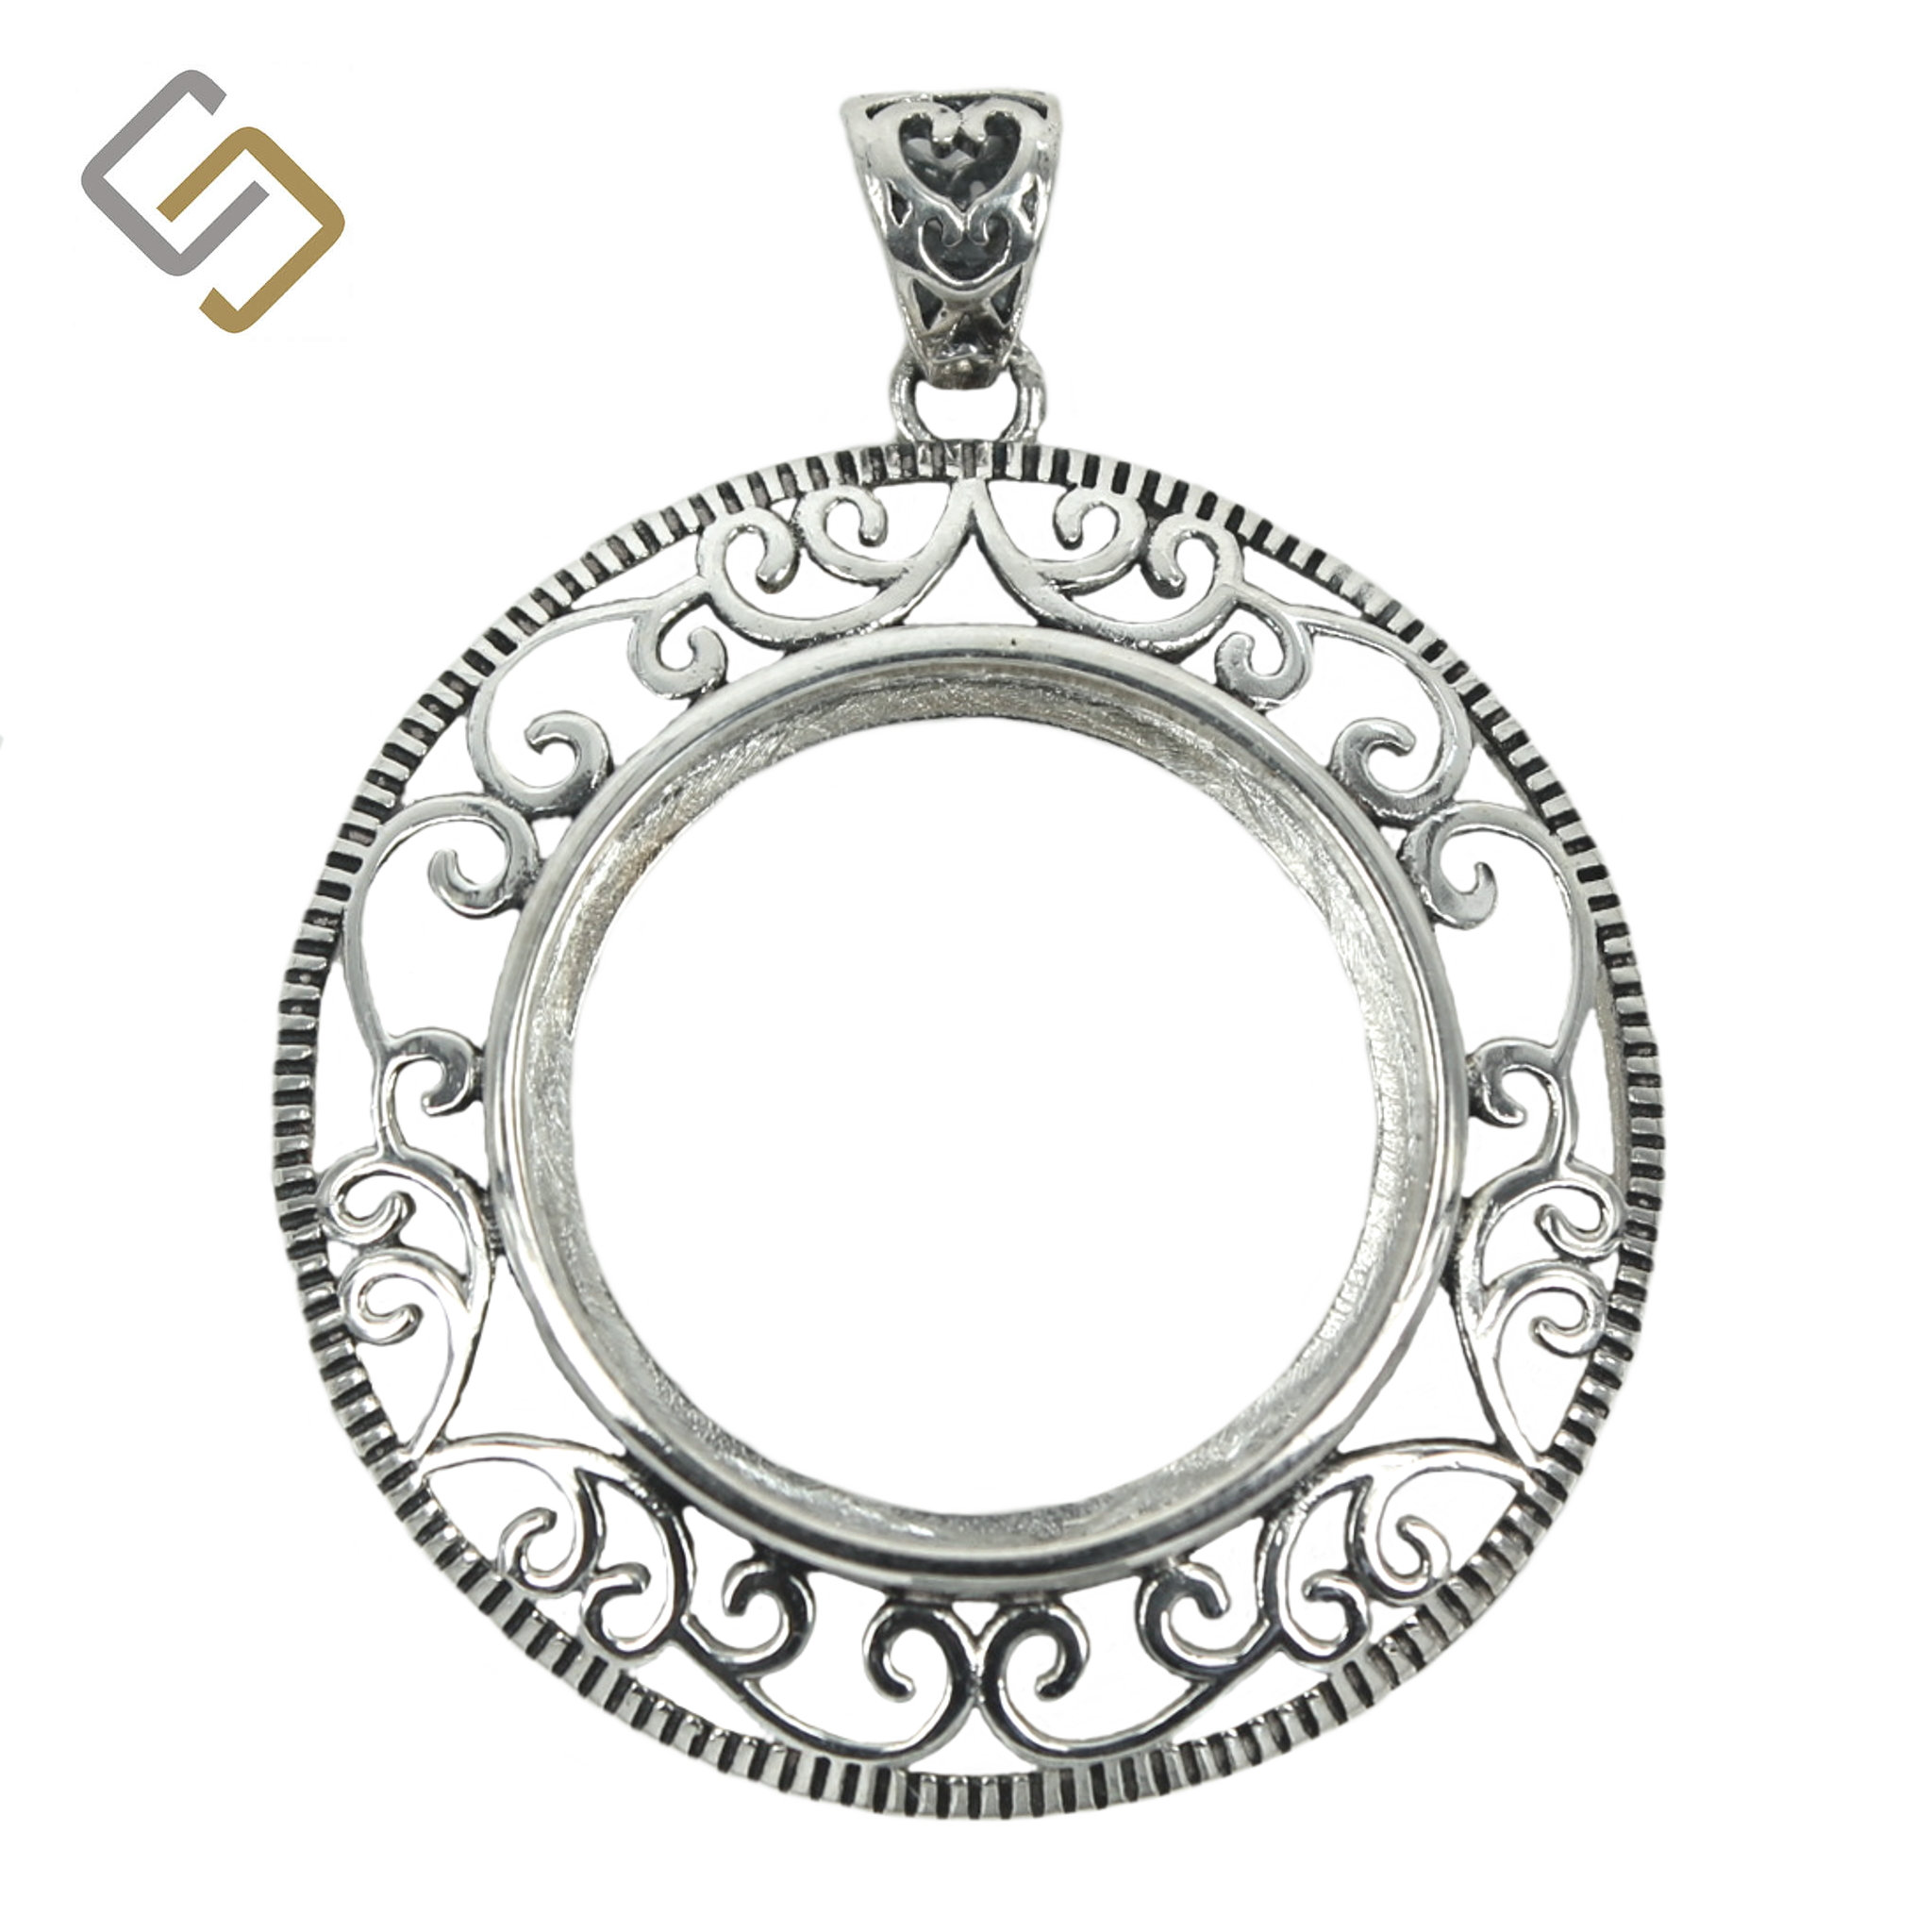 Oval rococo bezel pendant with soldered loop /& bail in sterling silver.